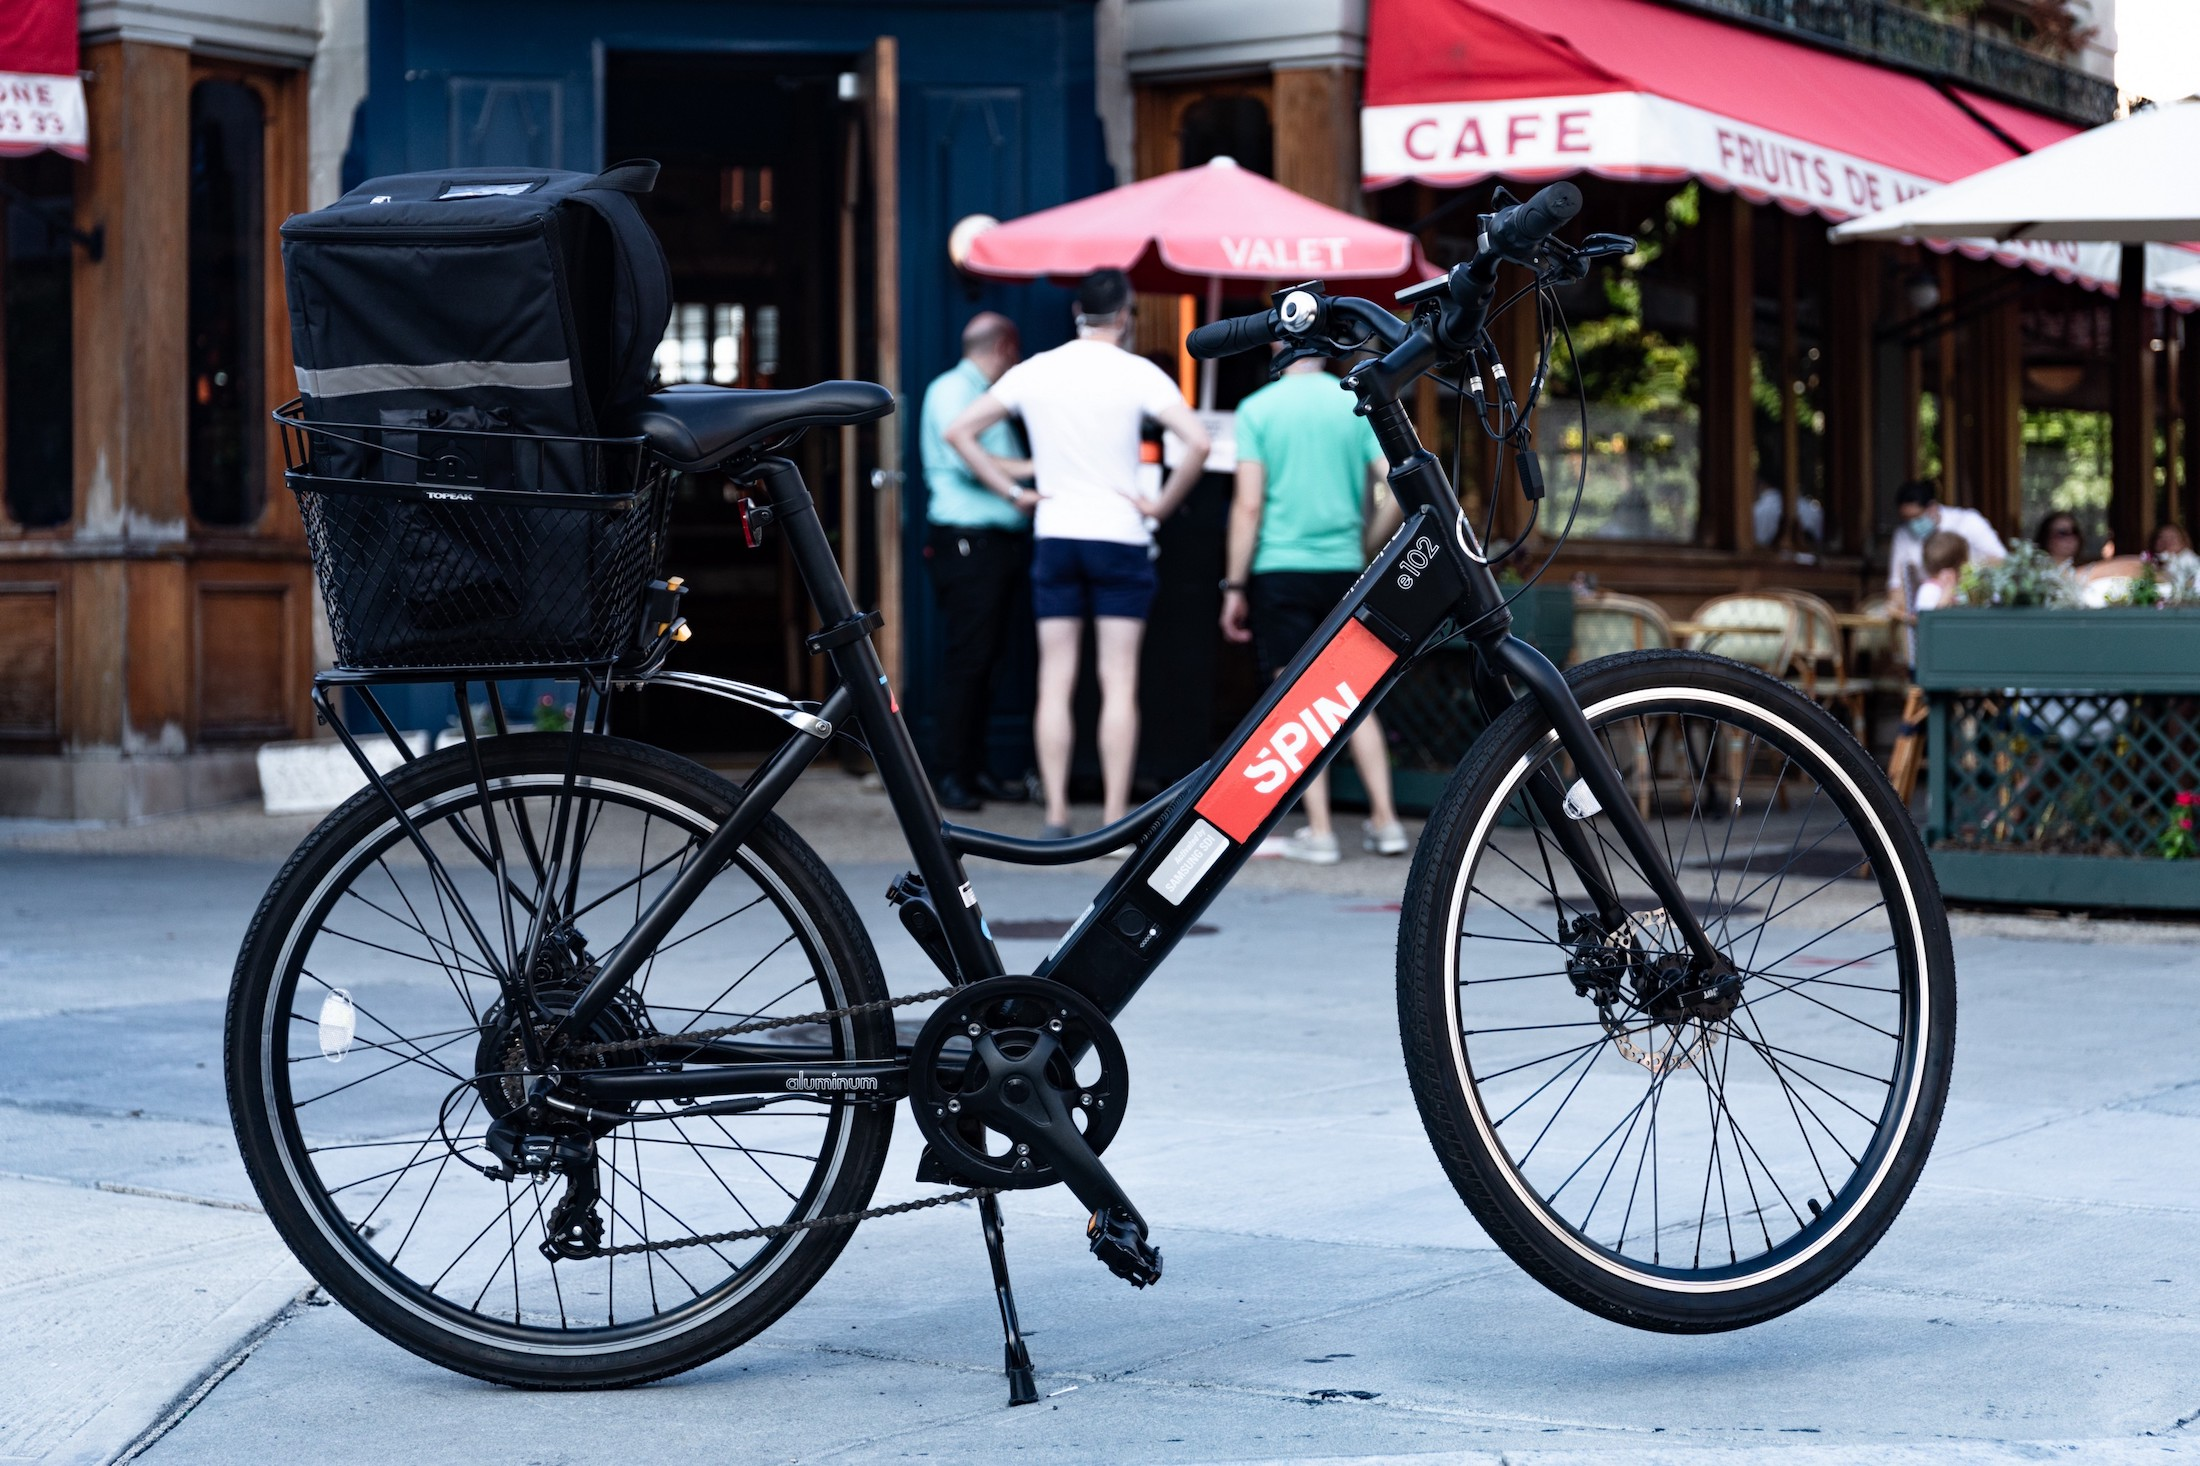 A bike in front of outdoor dining